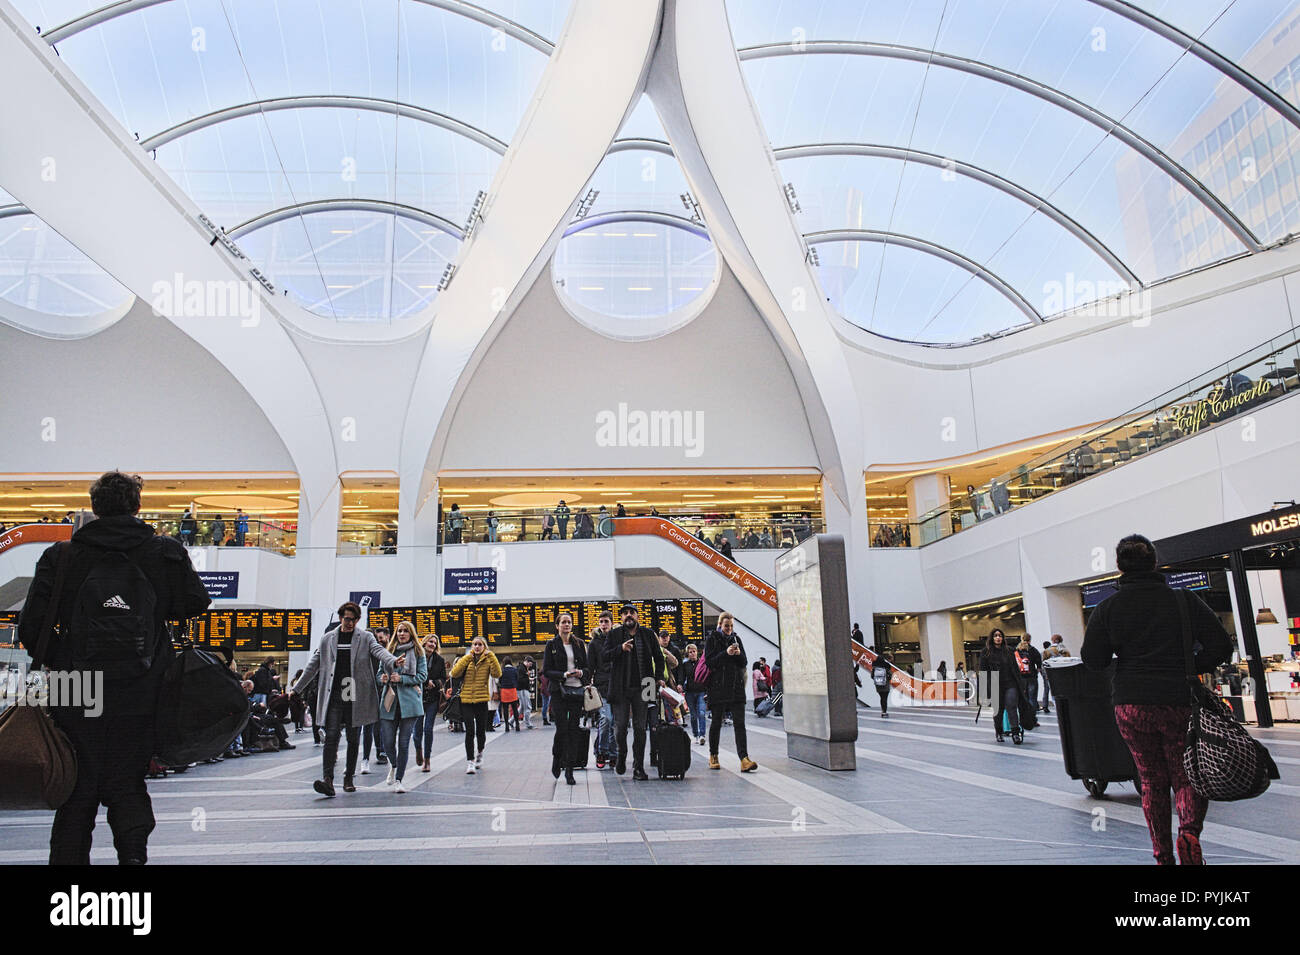 Birmingham New Street Station. Woman with travel suitcase. Men with   travel bags. People going out. - Stock Image